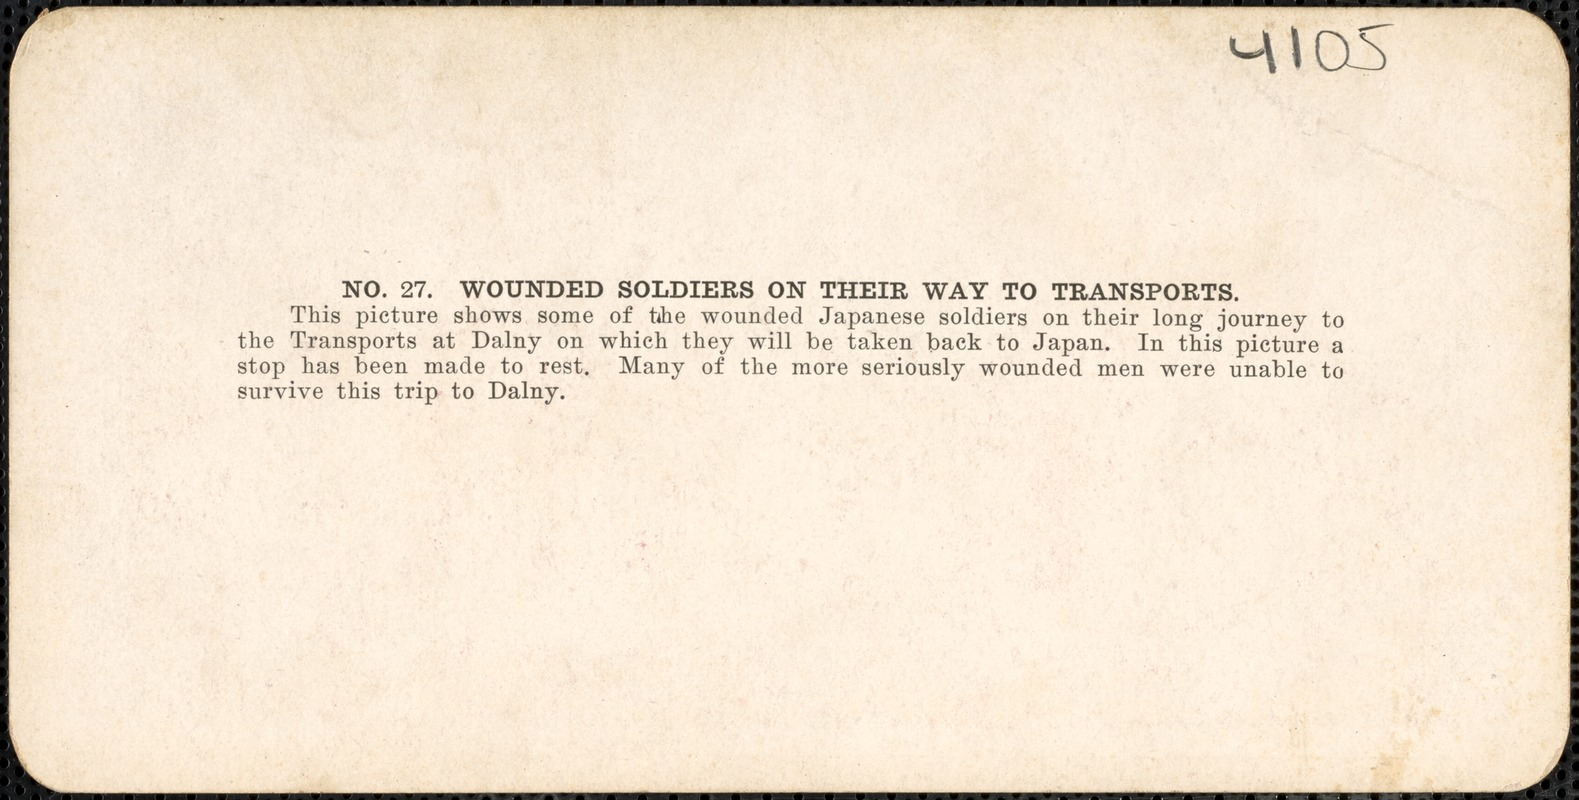 Wounded soldiers on their way to transports